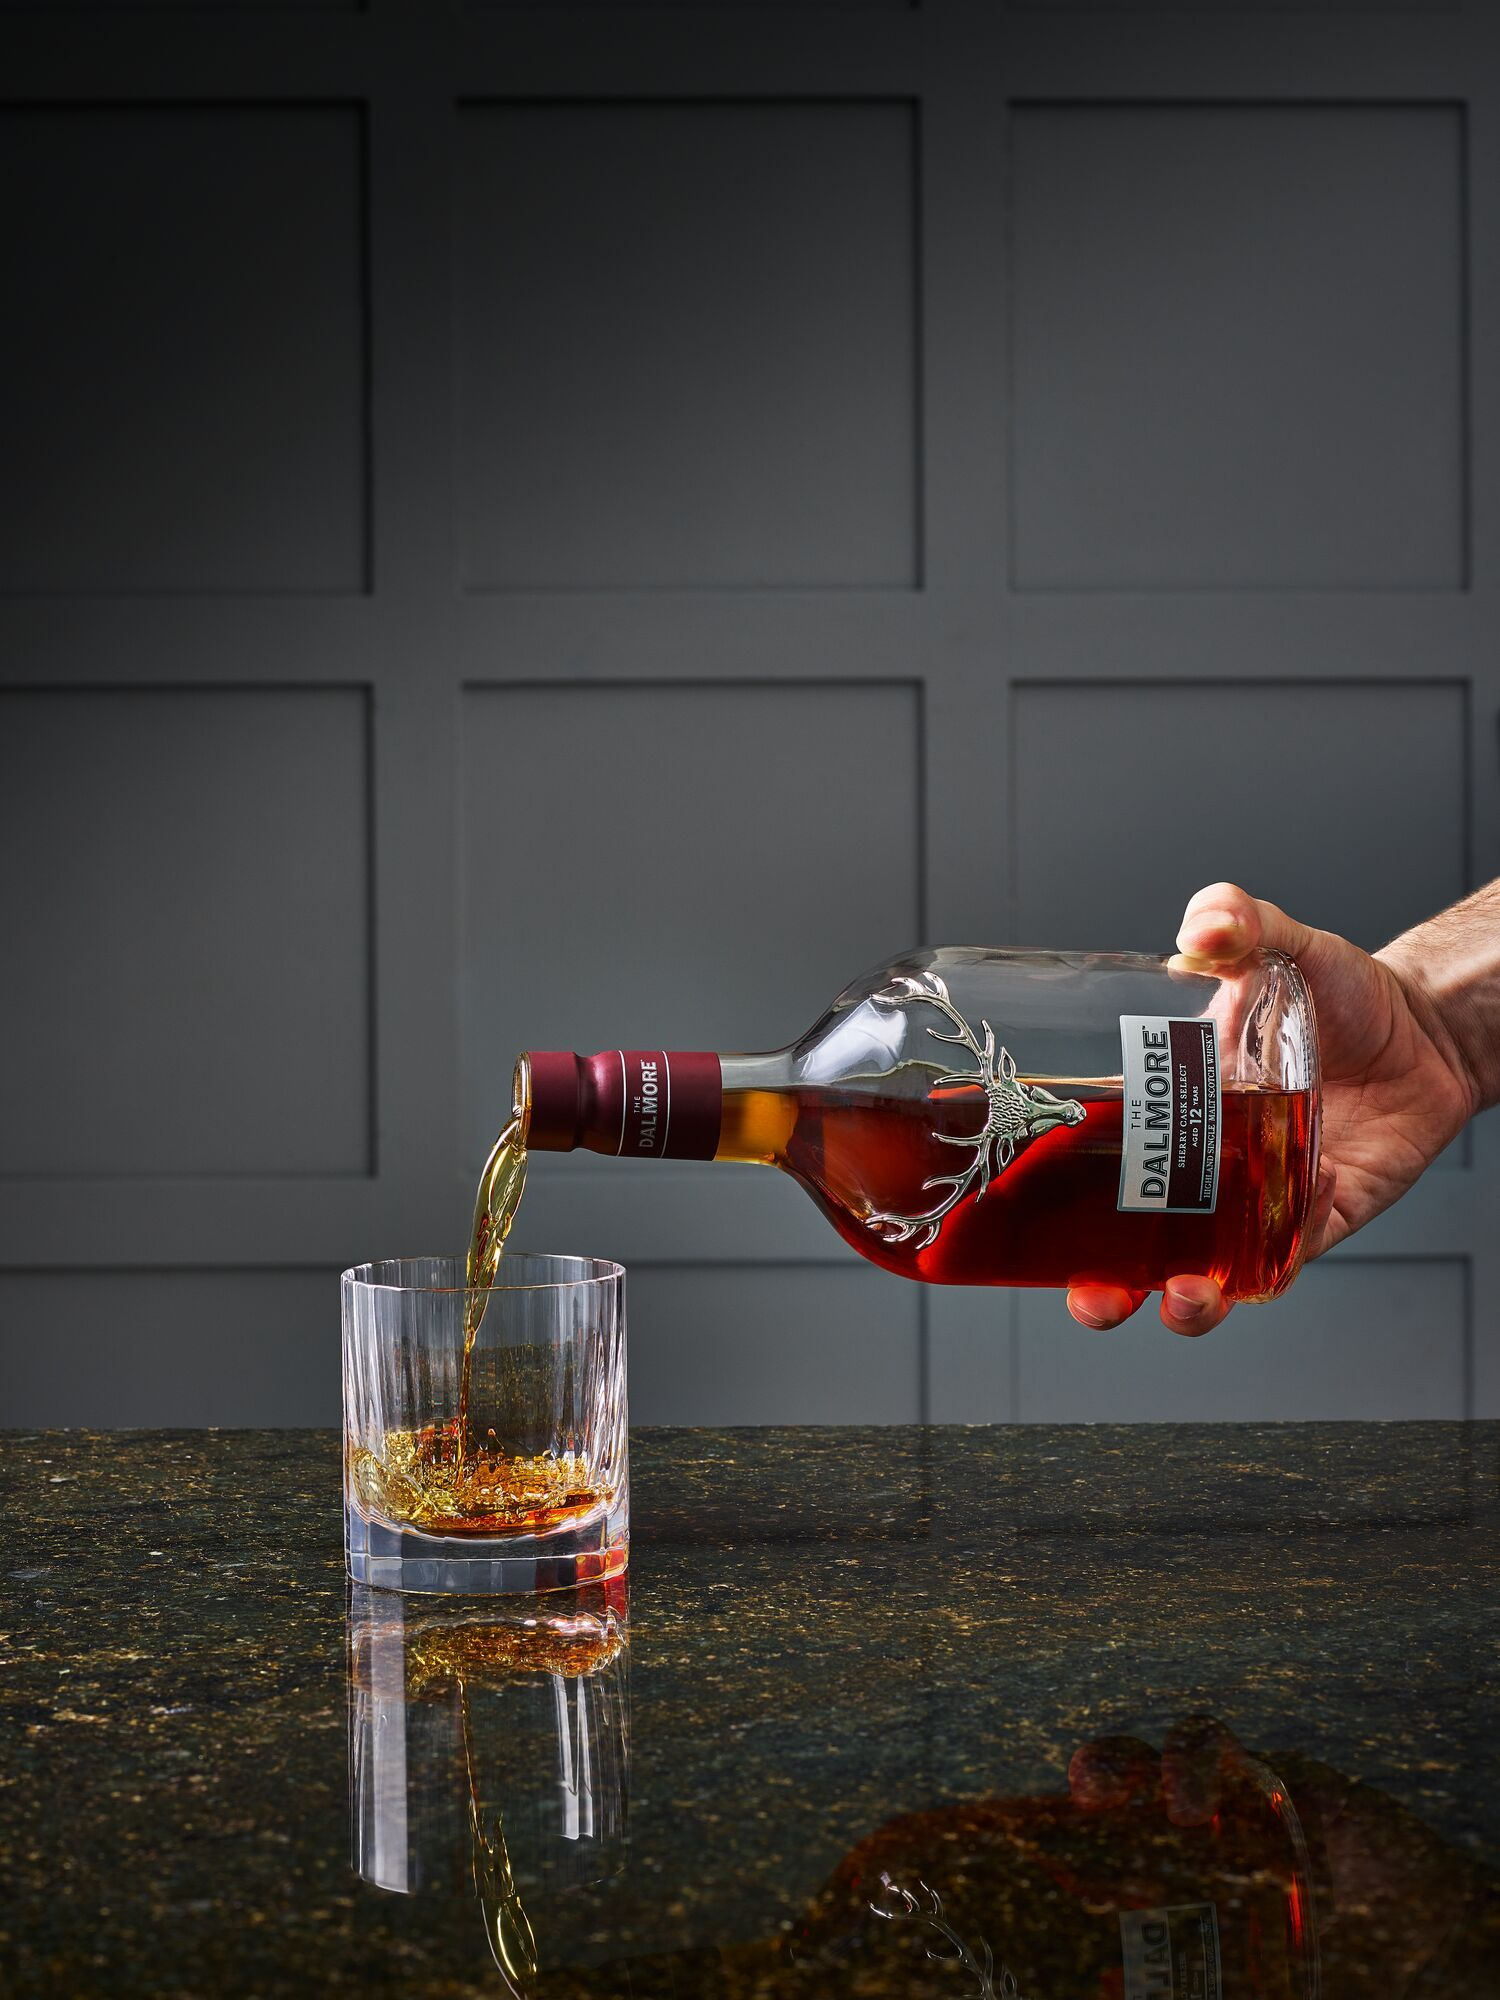 The Dalmore's New 12 Year Old Whisky Blend Boasts Sherry Cask Finish